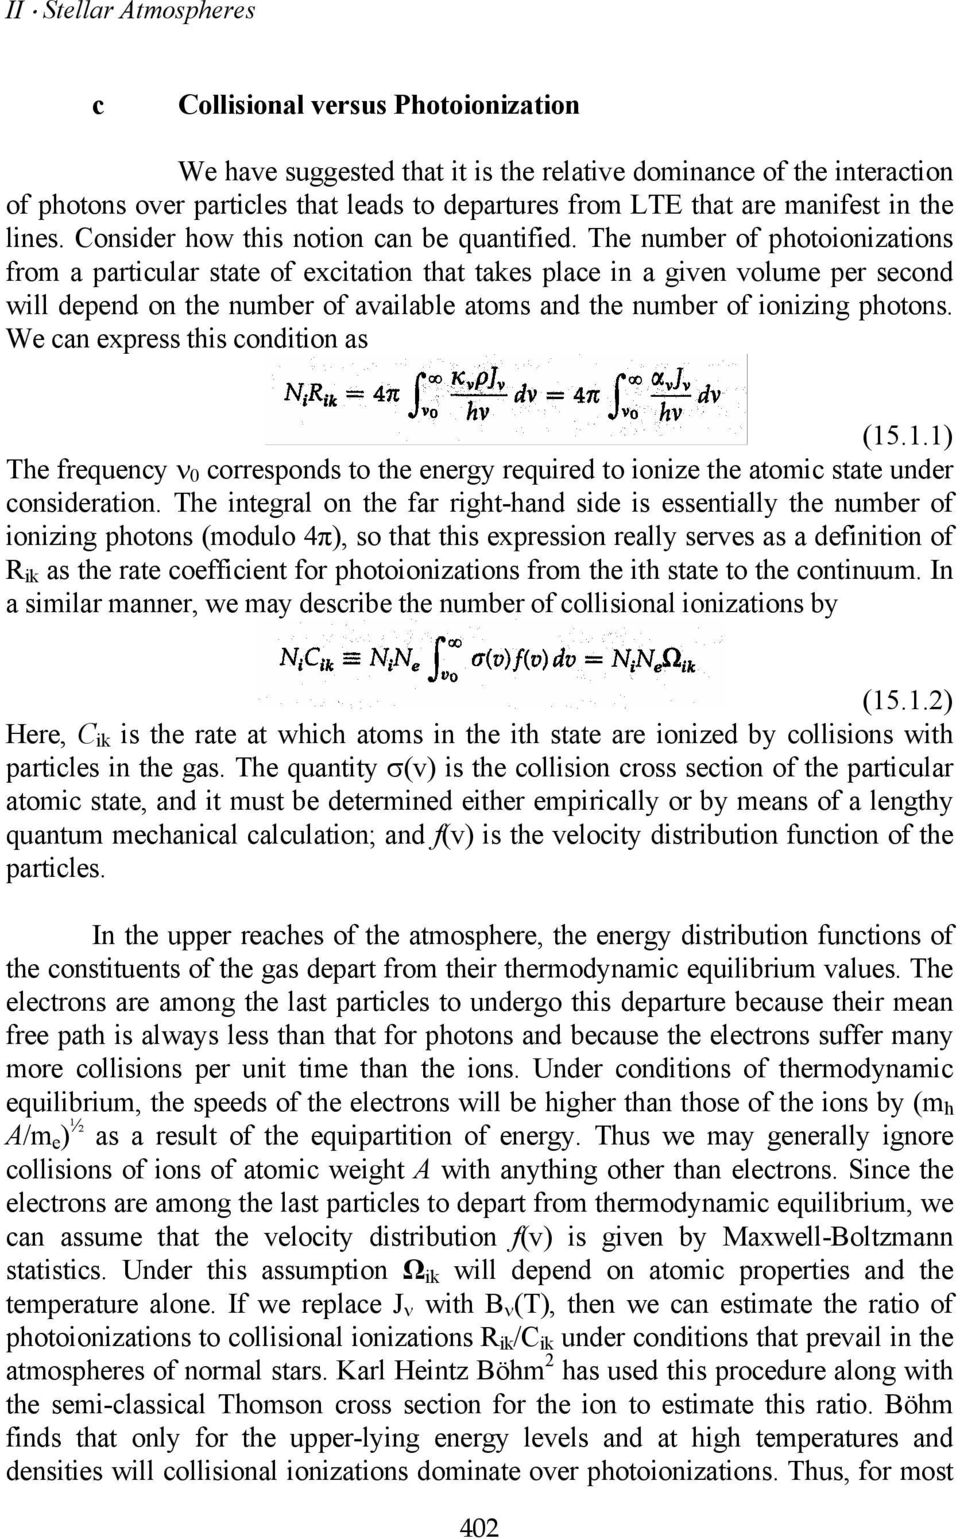 The number of photoionizations from a particular state of excitation that takes place in a given volume per second will depend on the number of available atoms and the number of ionizing photons.